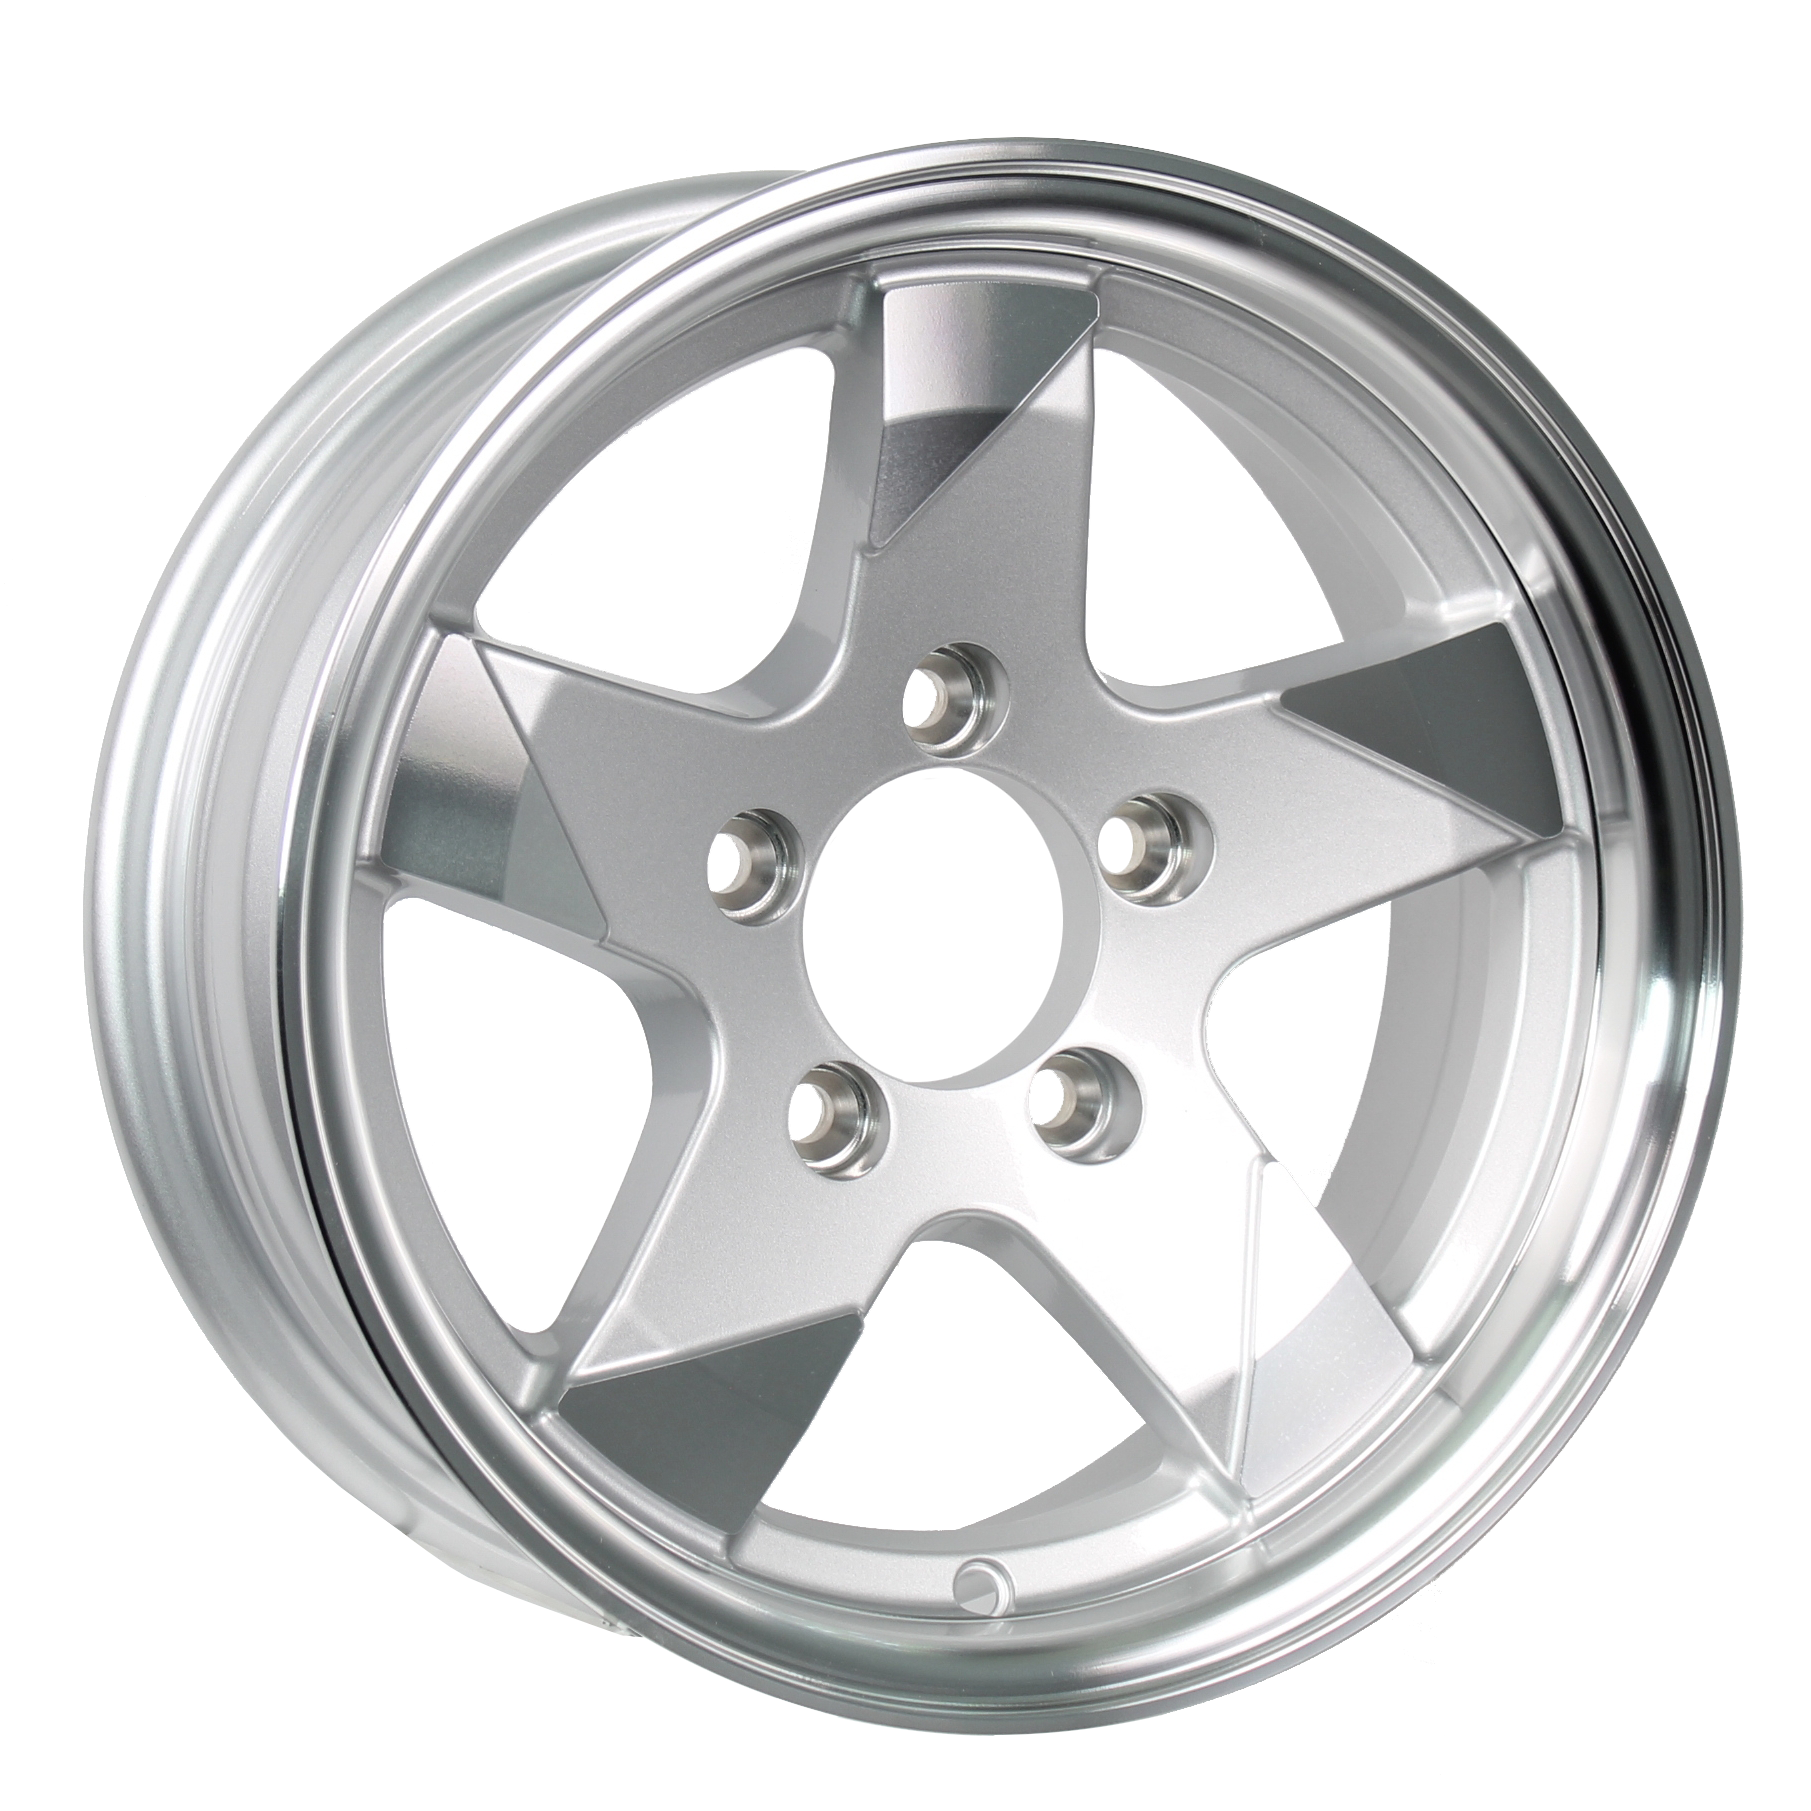 Ascent- 15x5 5-4.5 Silver Aluminum Trailer Wheel  Image